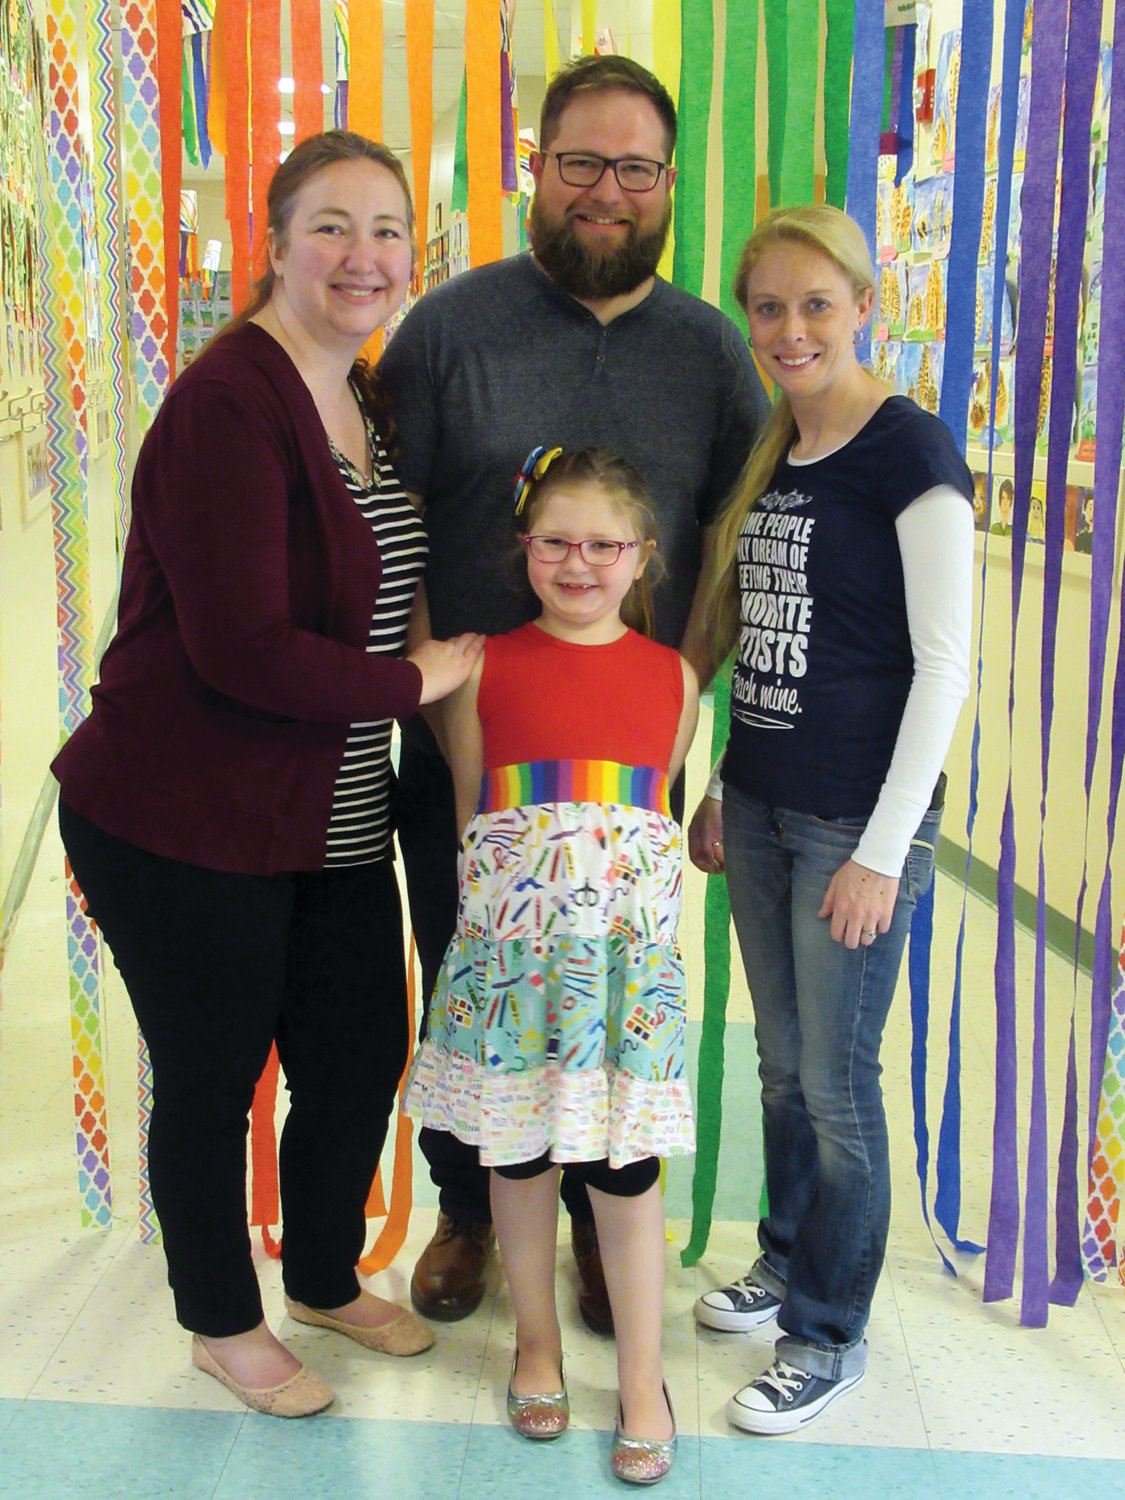 KIM'S KORNER: ECC art teacher Kim Marshall, right, receives congratulations from her family – Harry, Jane and Ryleigh Cole – who took in Friday night's ECC Art Show.